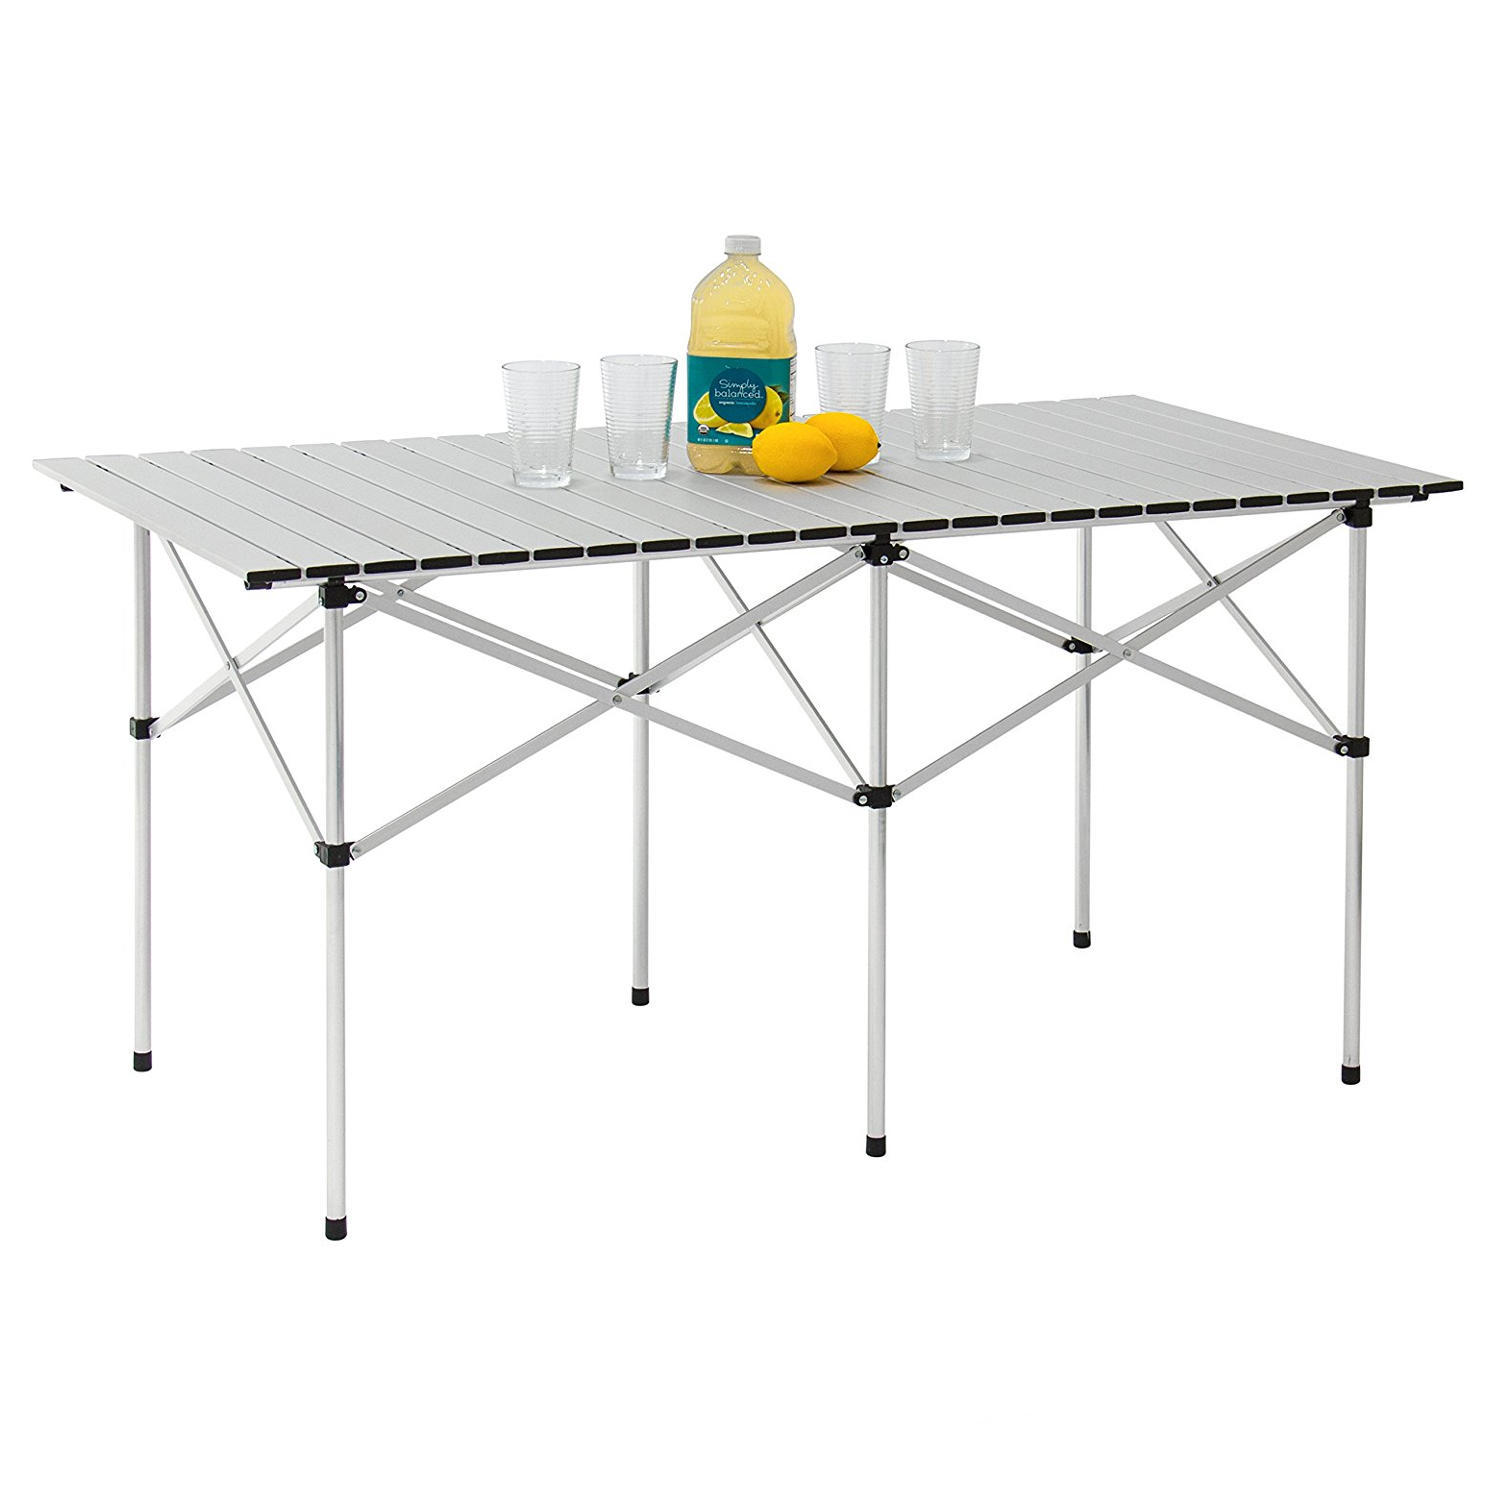 0aee0 moustache lvc ty14070 camping chairs tables portable camping aluminum folding table extended version 140cm x 70cm moustache